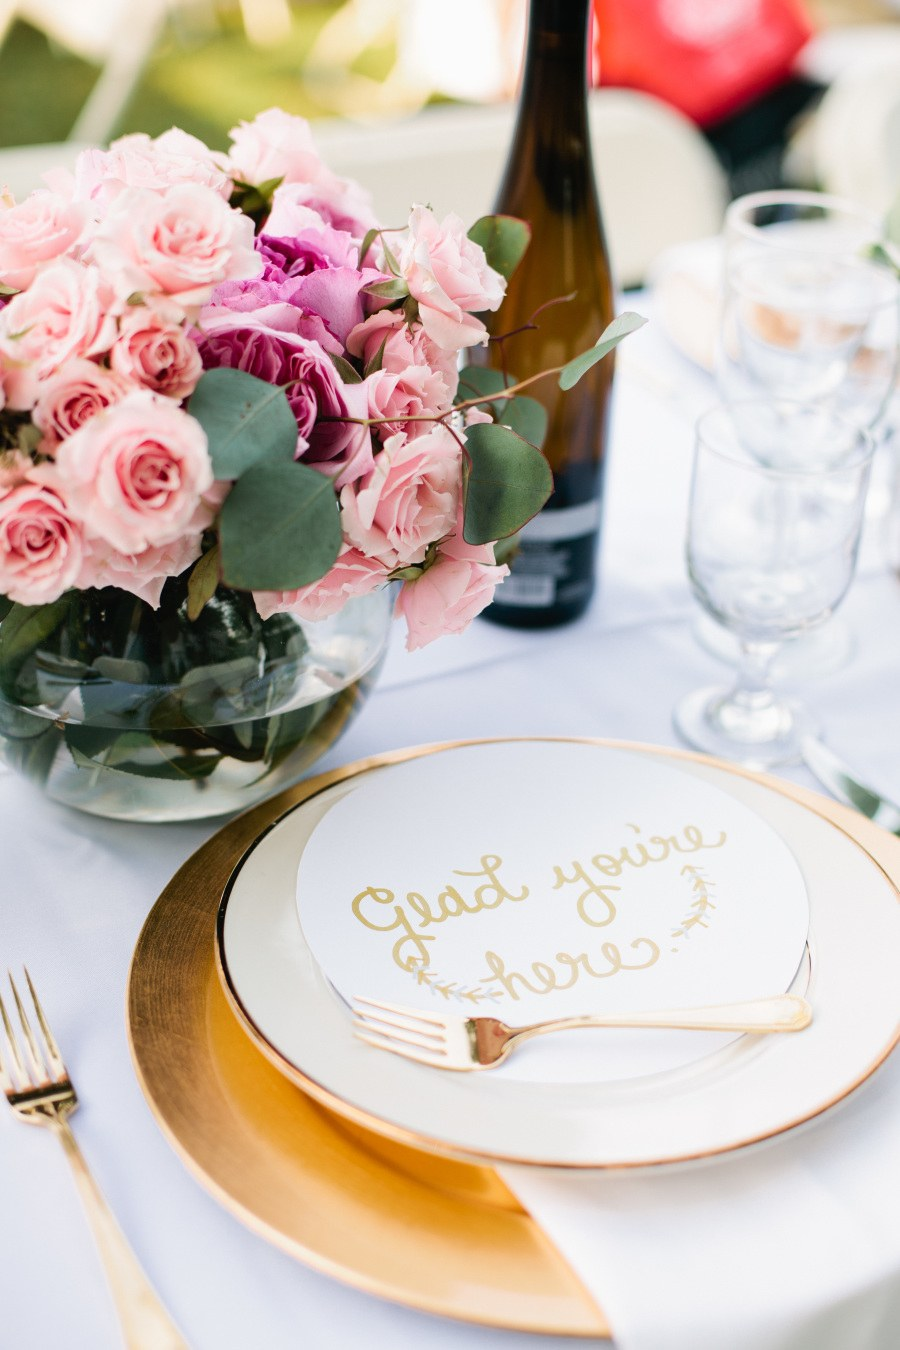 Nicole Lev Photography    Message on Guests' Plates  Instead of a letter, you could keep the sentiments short and sweet by writing a quick-but-thoughtful message to guests on each salad or bread plate using an edible-ink pen.